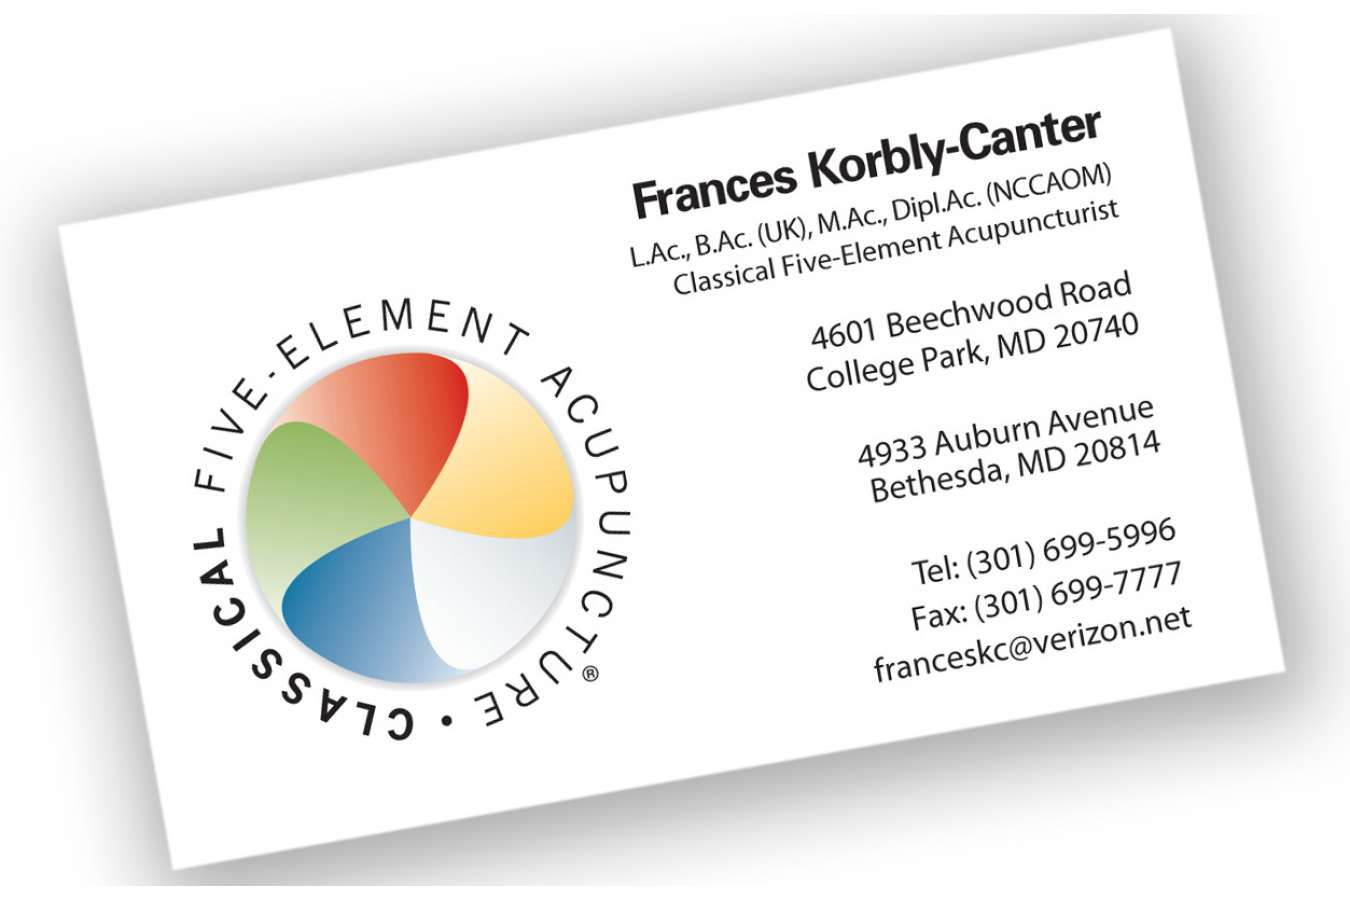 Frances : Business Card for classical five element acupuncturist